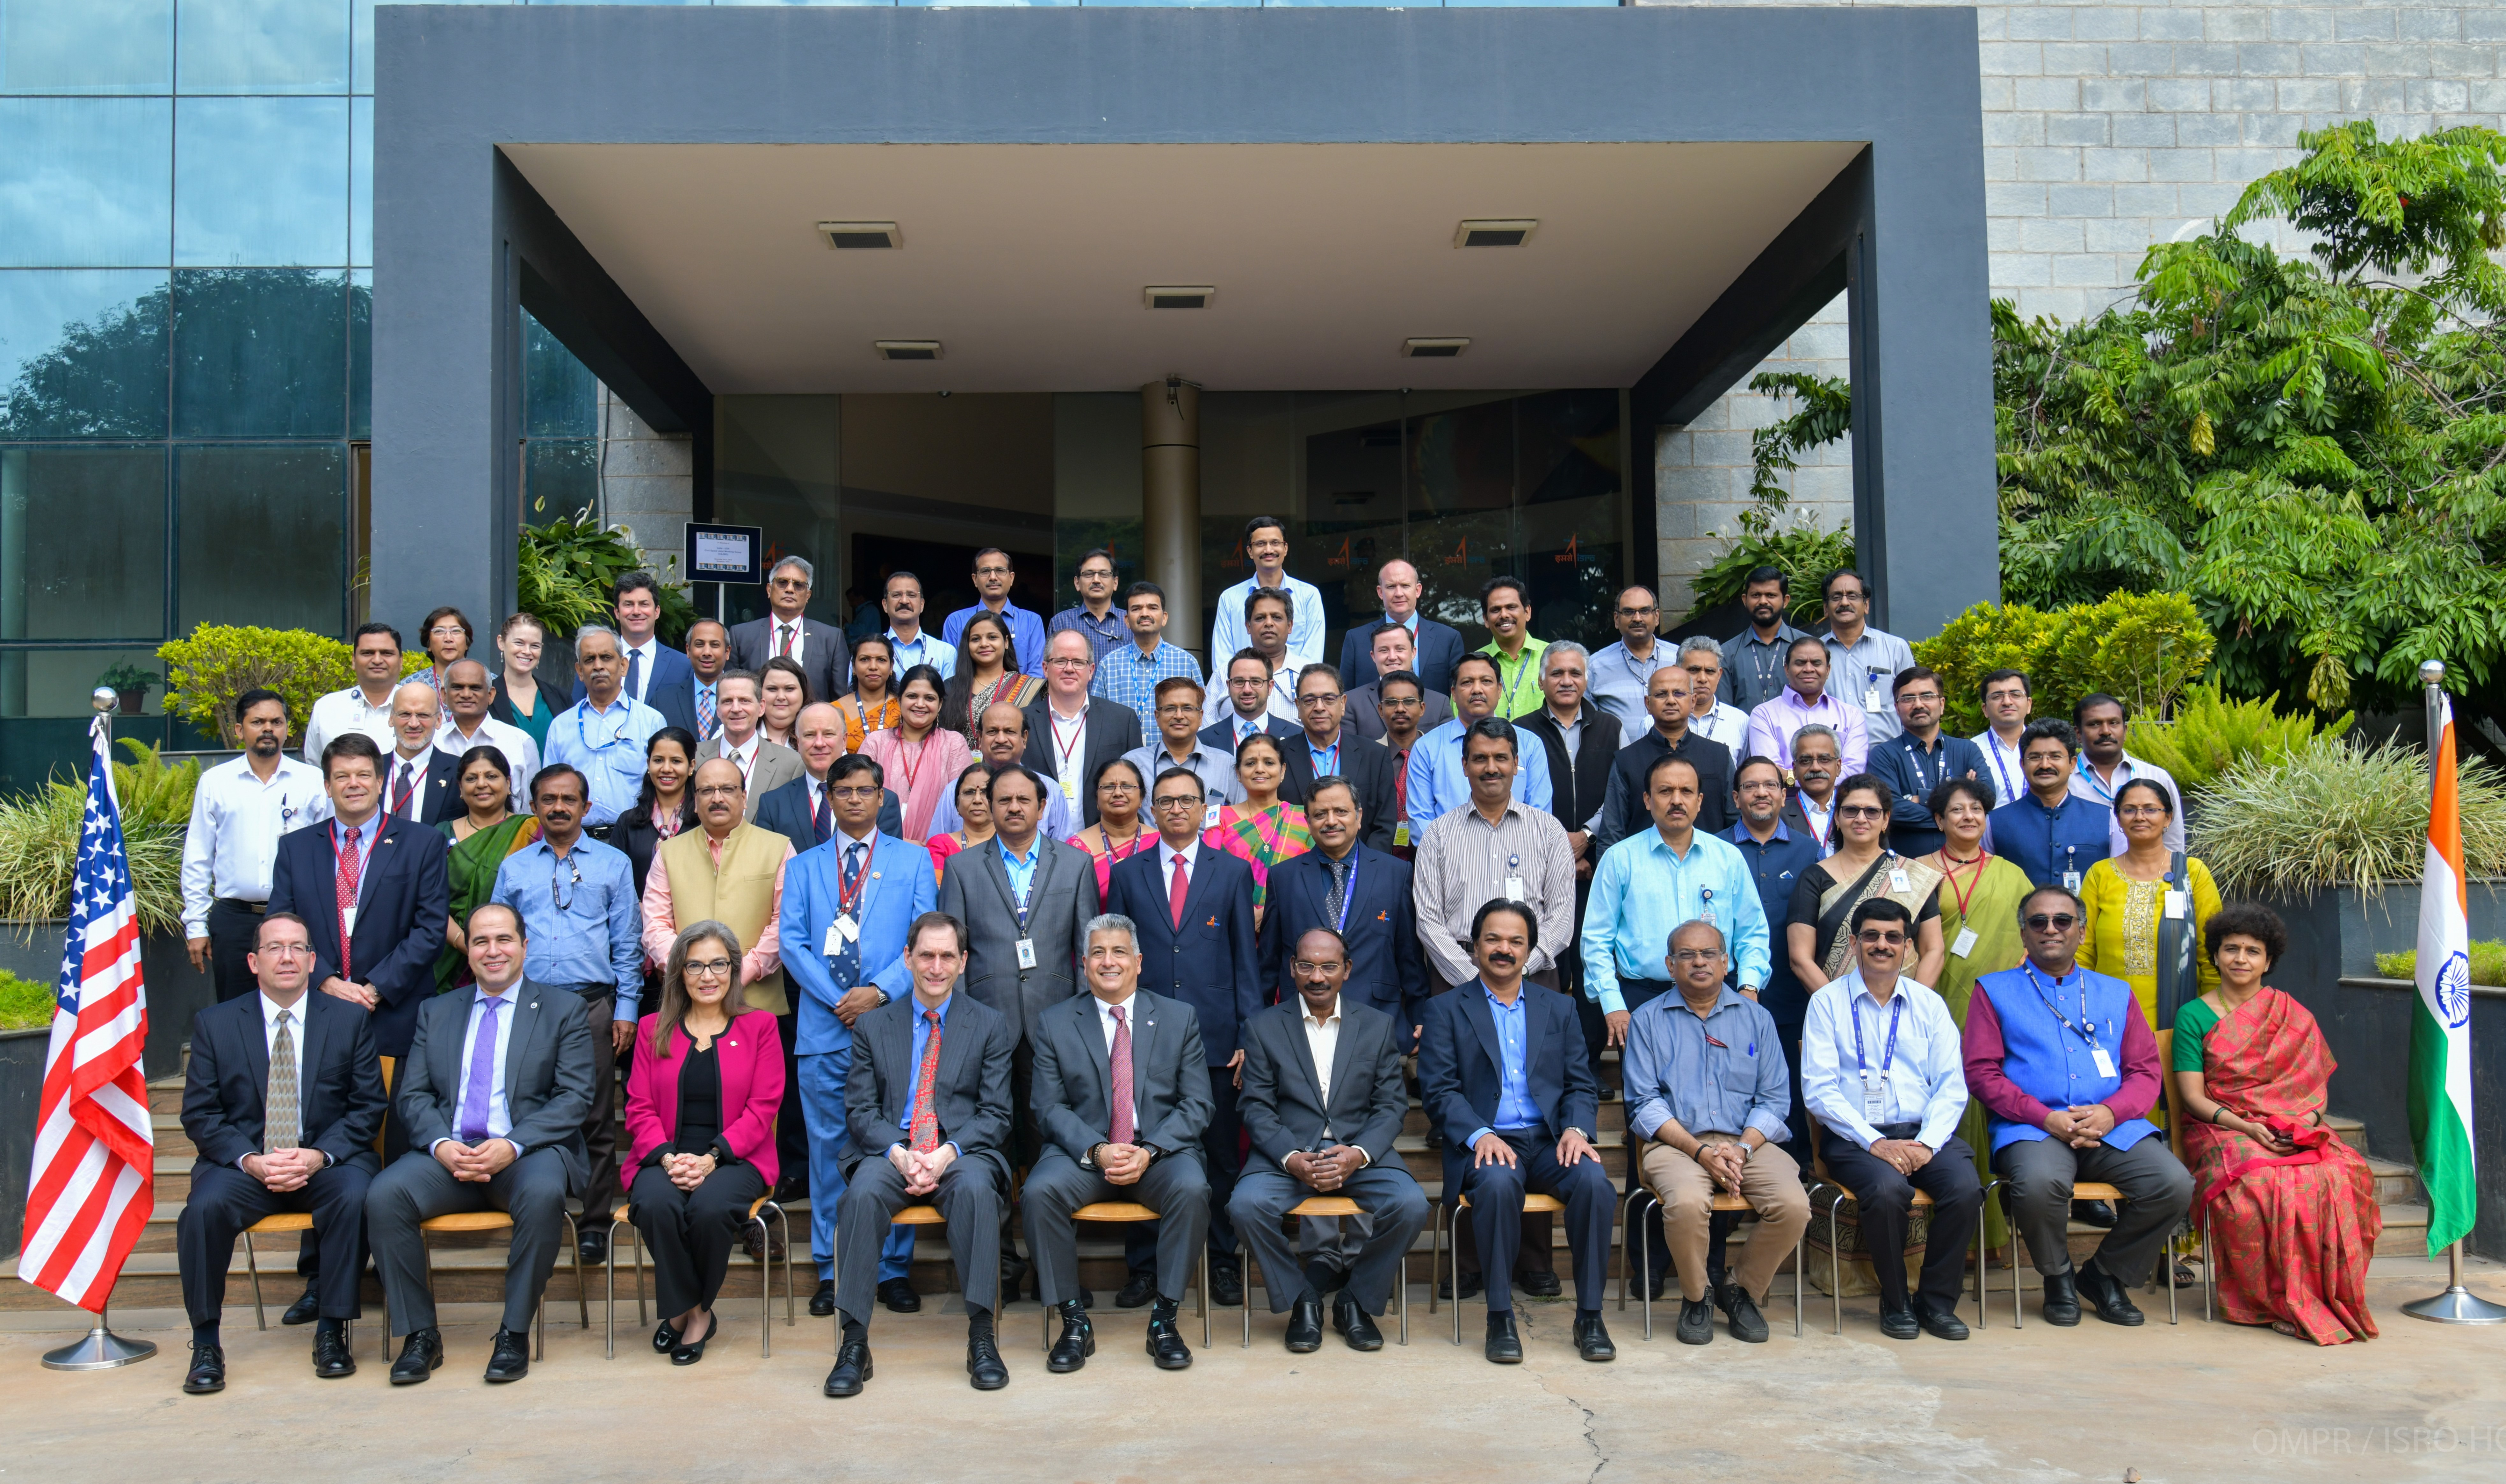 7th meeting of India-USA CSJWG was organised at ISRO Headquarters, Bangalore